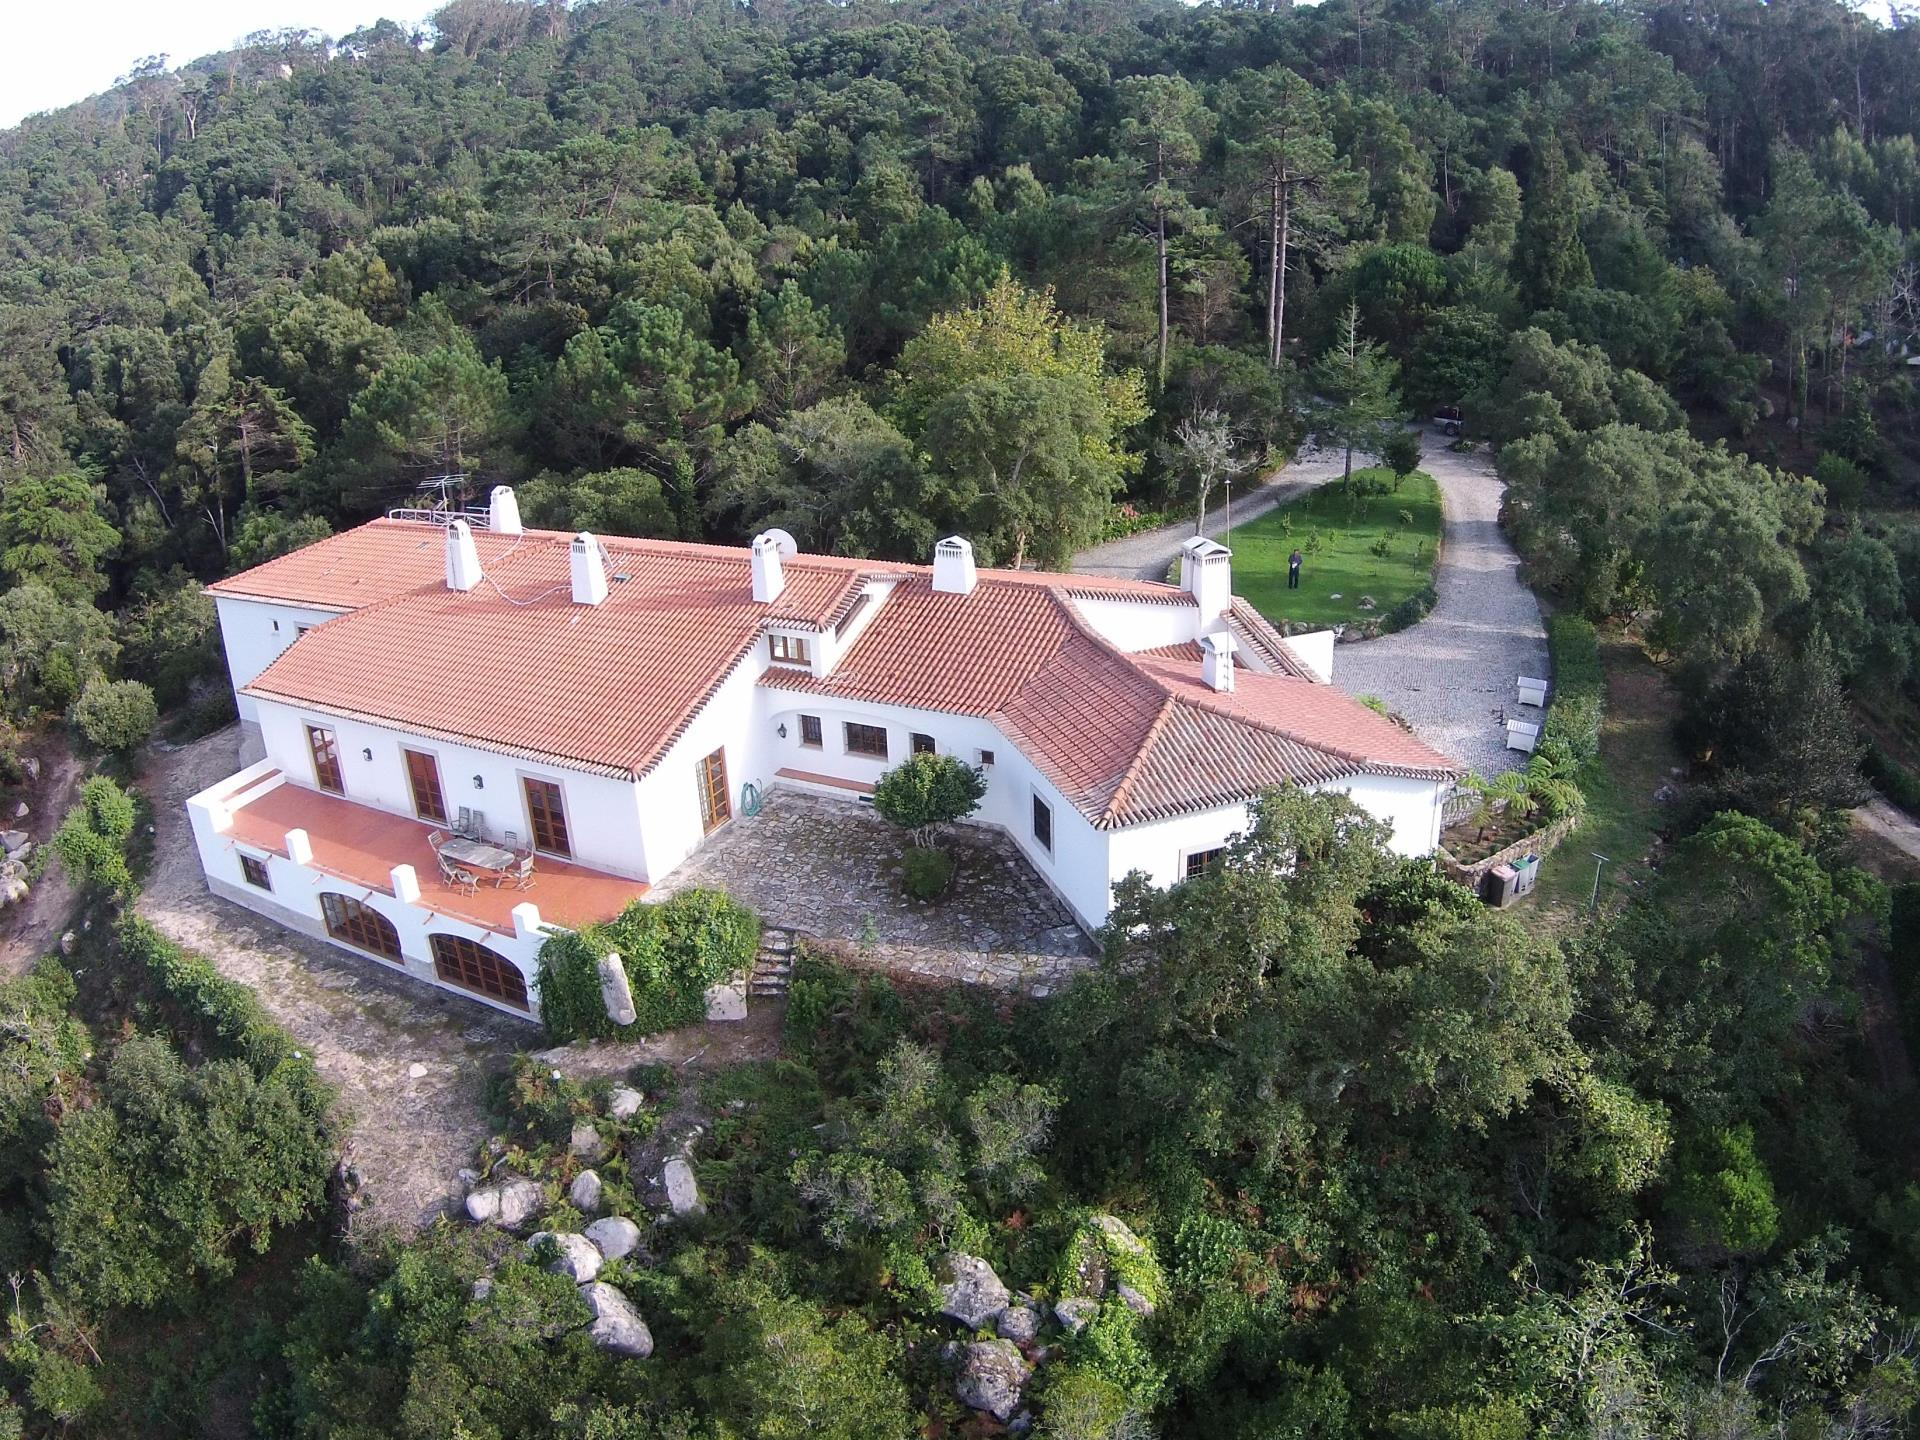 Property For Sale at Farm, 7 bedrooms, for Sale